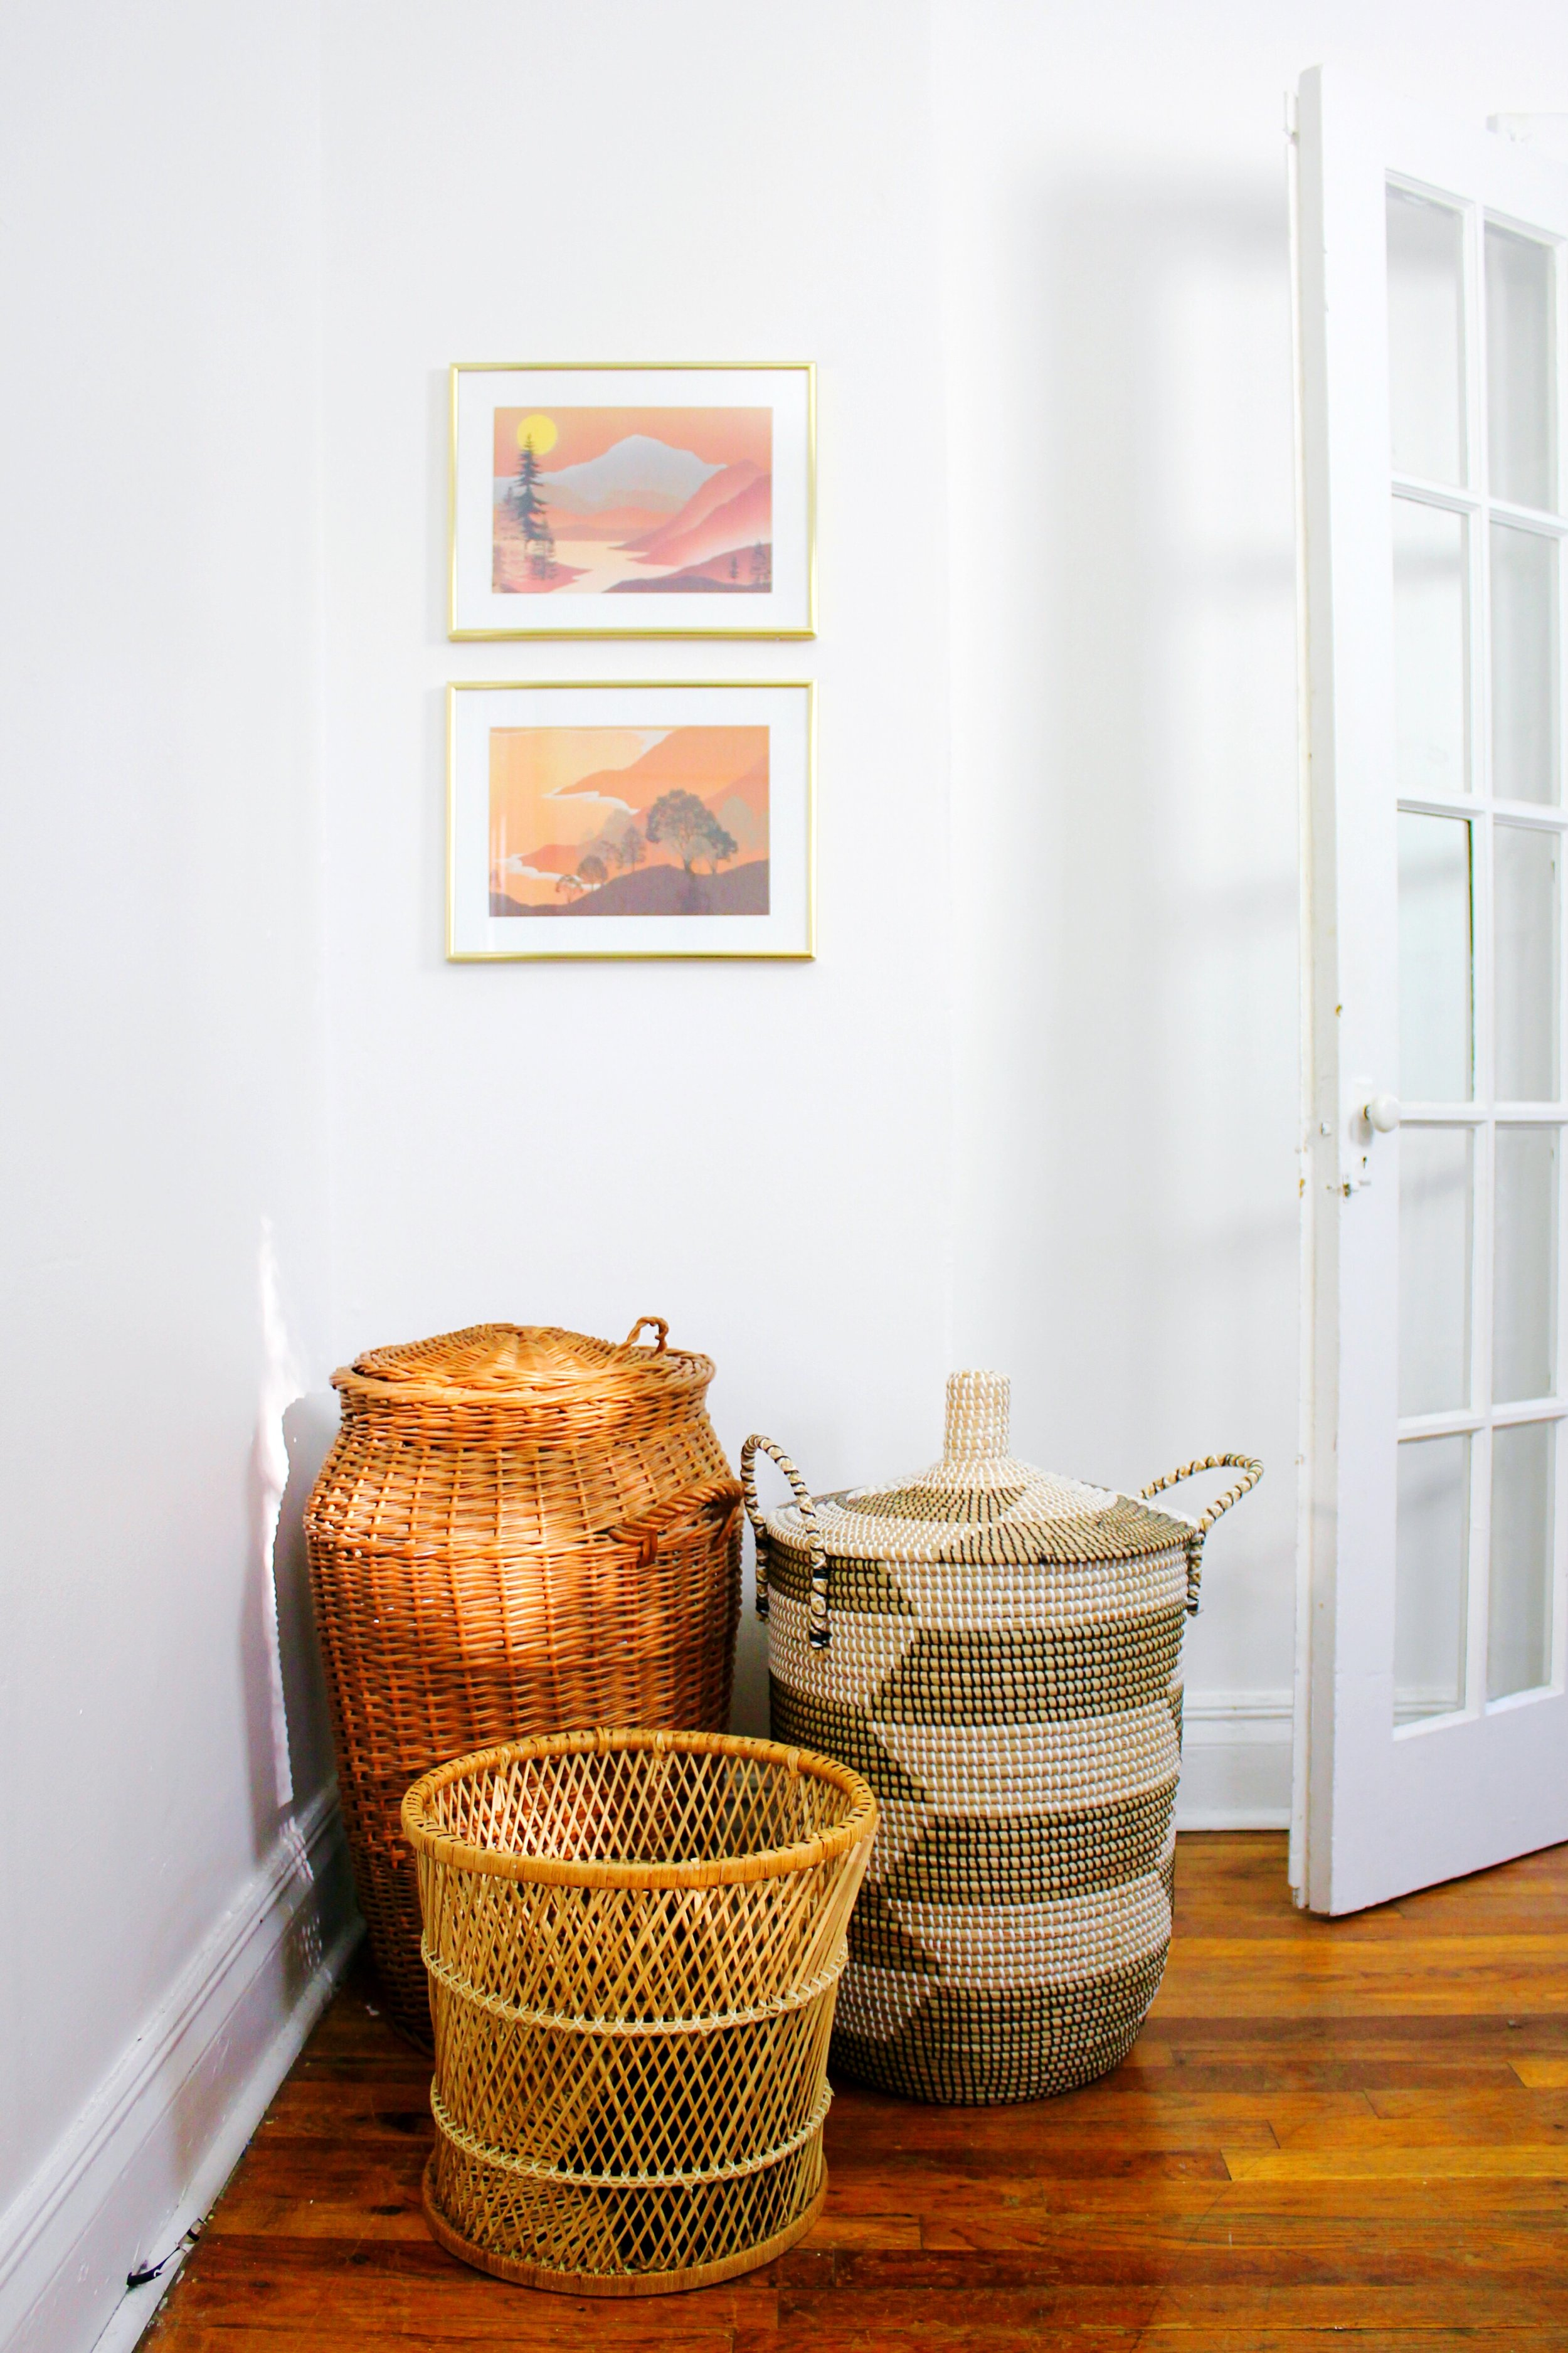 80s Thrift Store Art and Baskets